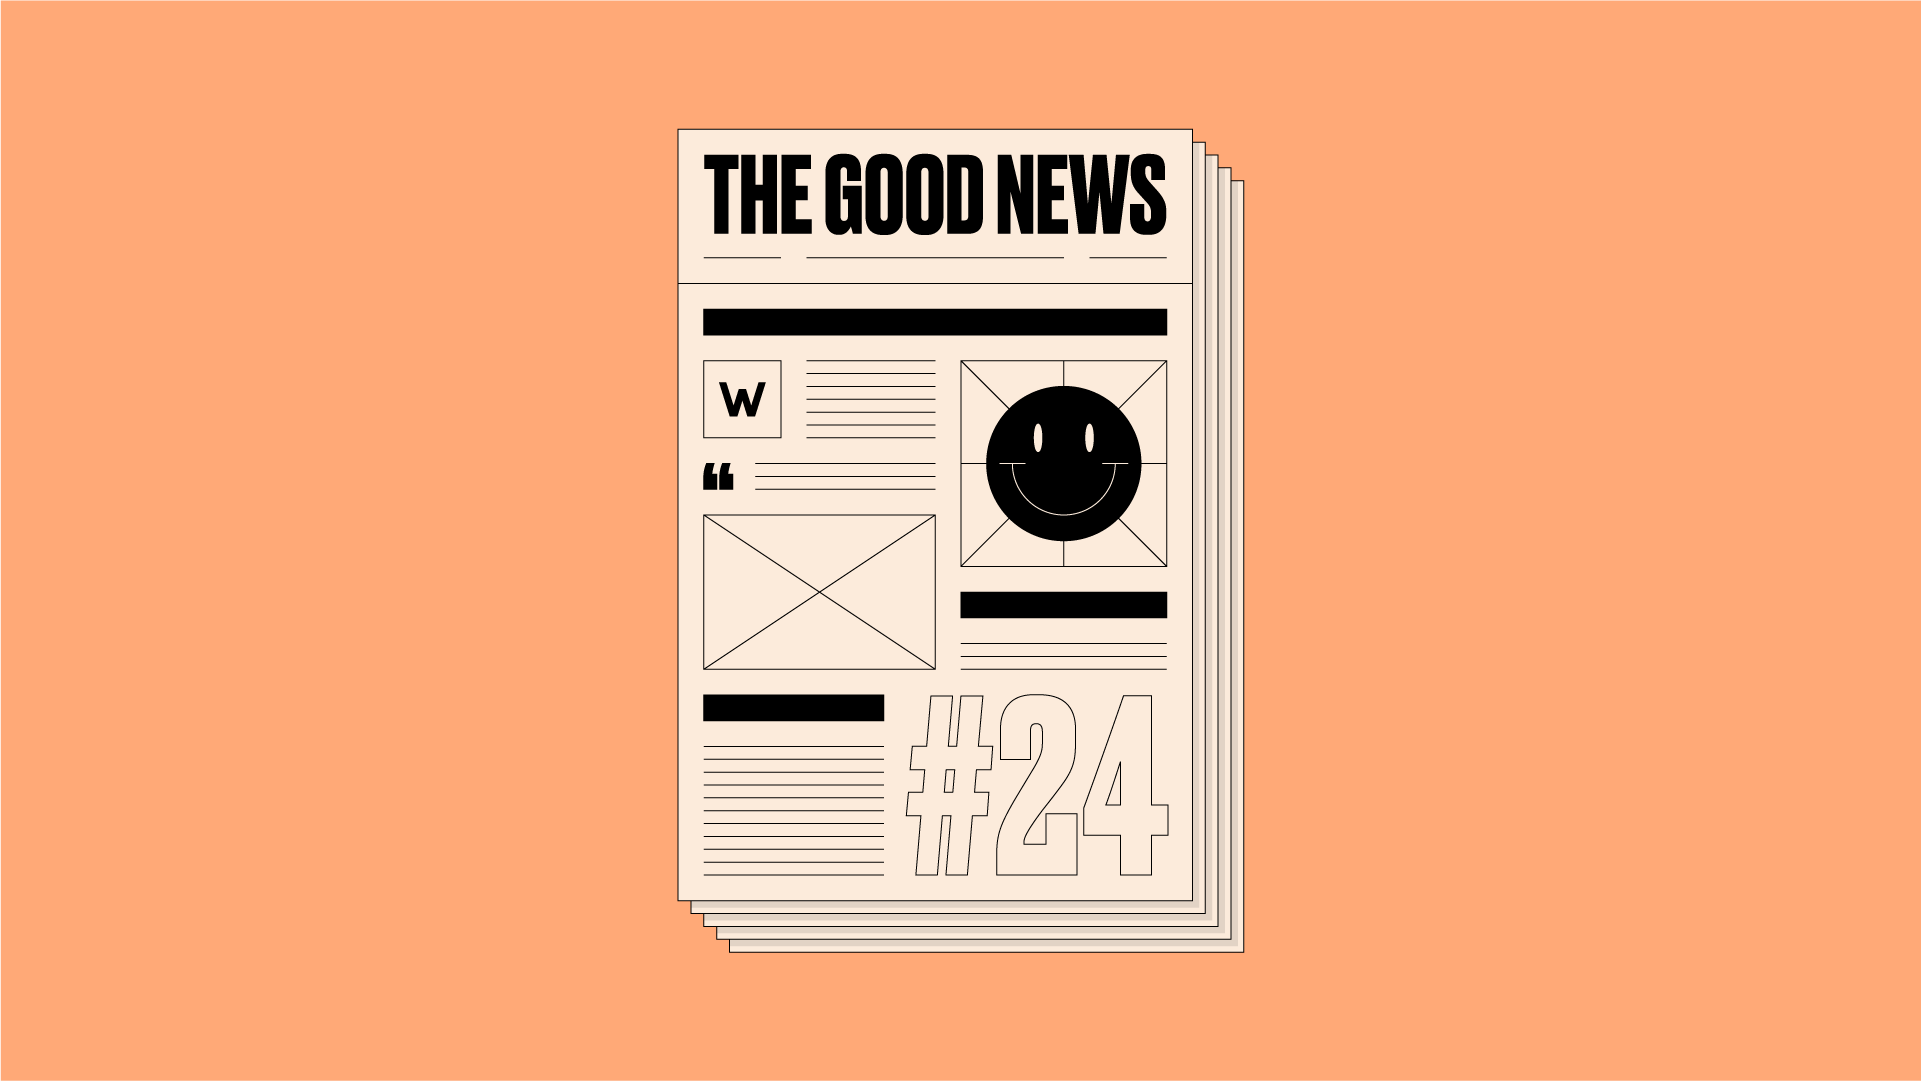 Illustration of newspaper front page with 'The Good News #24' written on it, on an orange background.